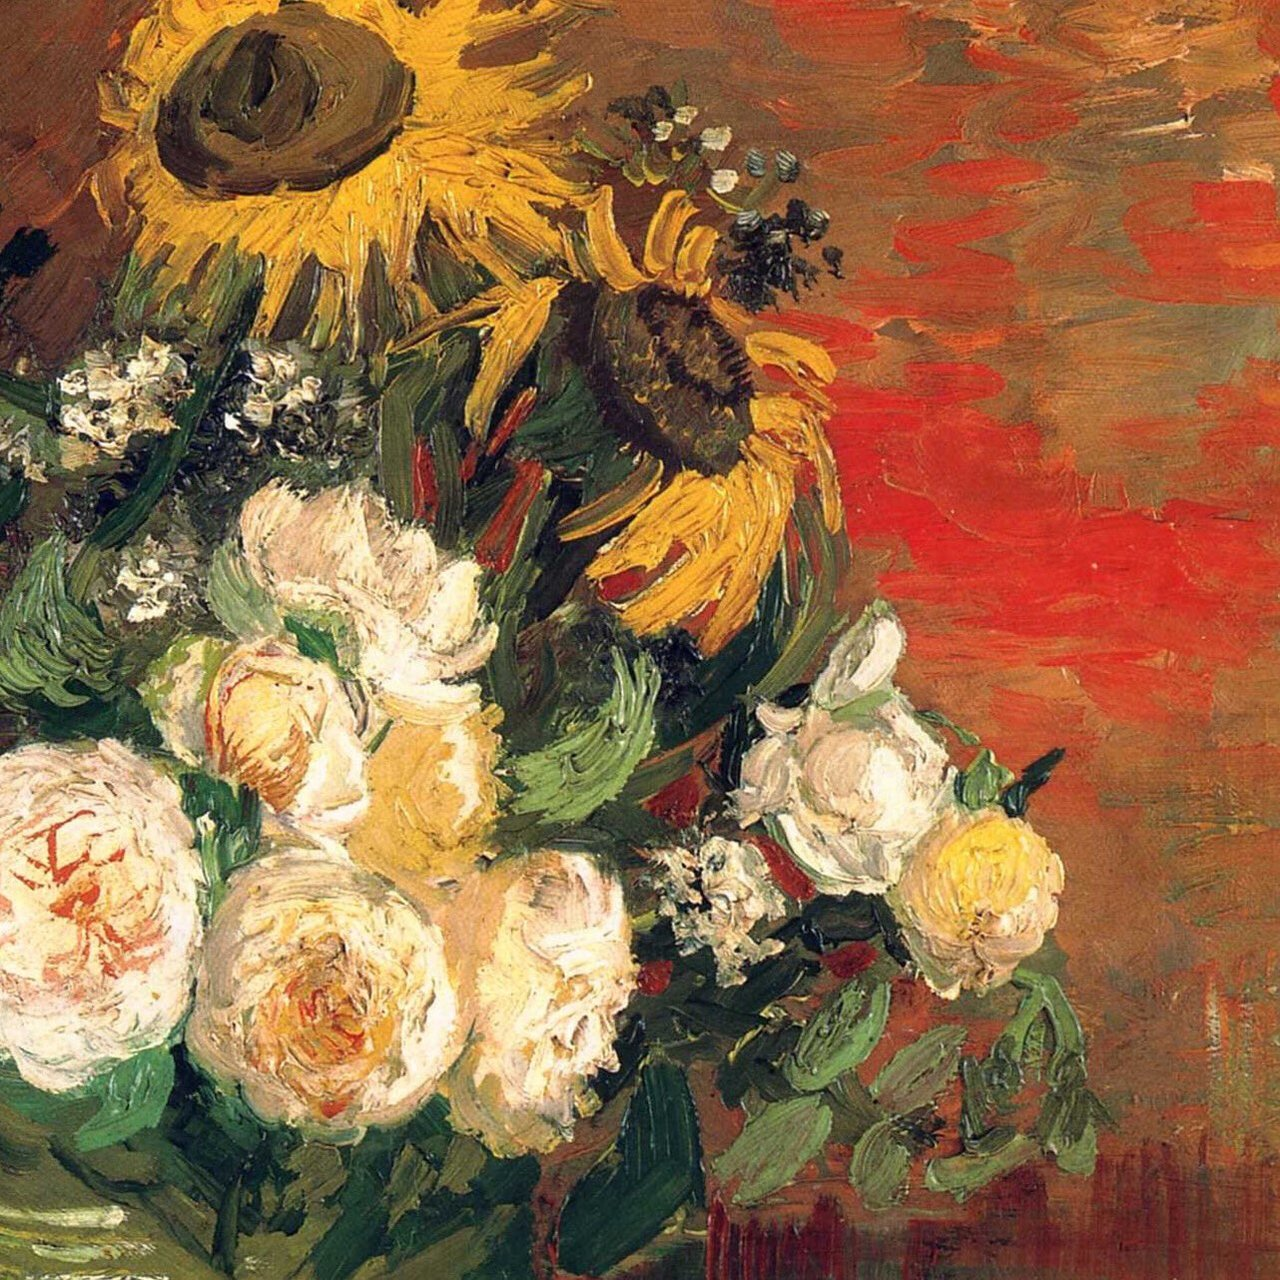 Still Life with Roses and Sunflowers, 1886. #vangogh #art #arthistory https://t.co/JdK8guqwJk